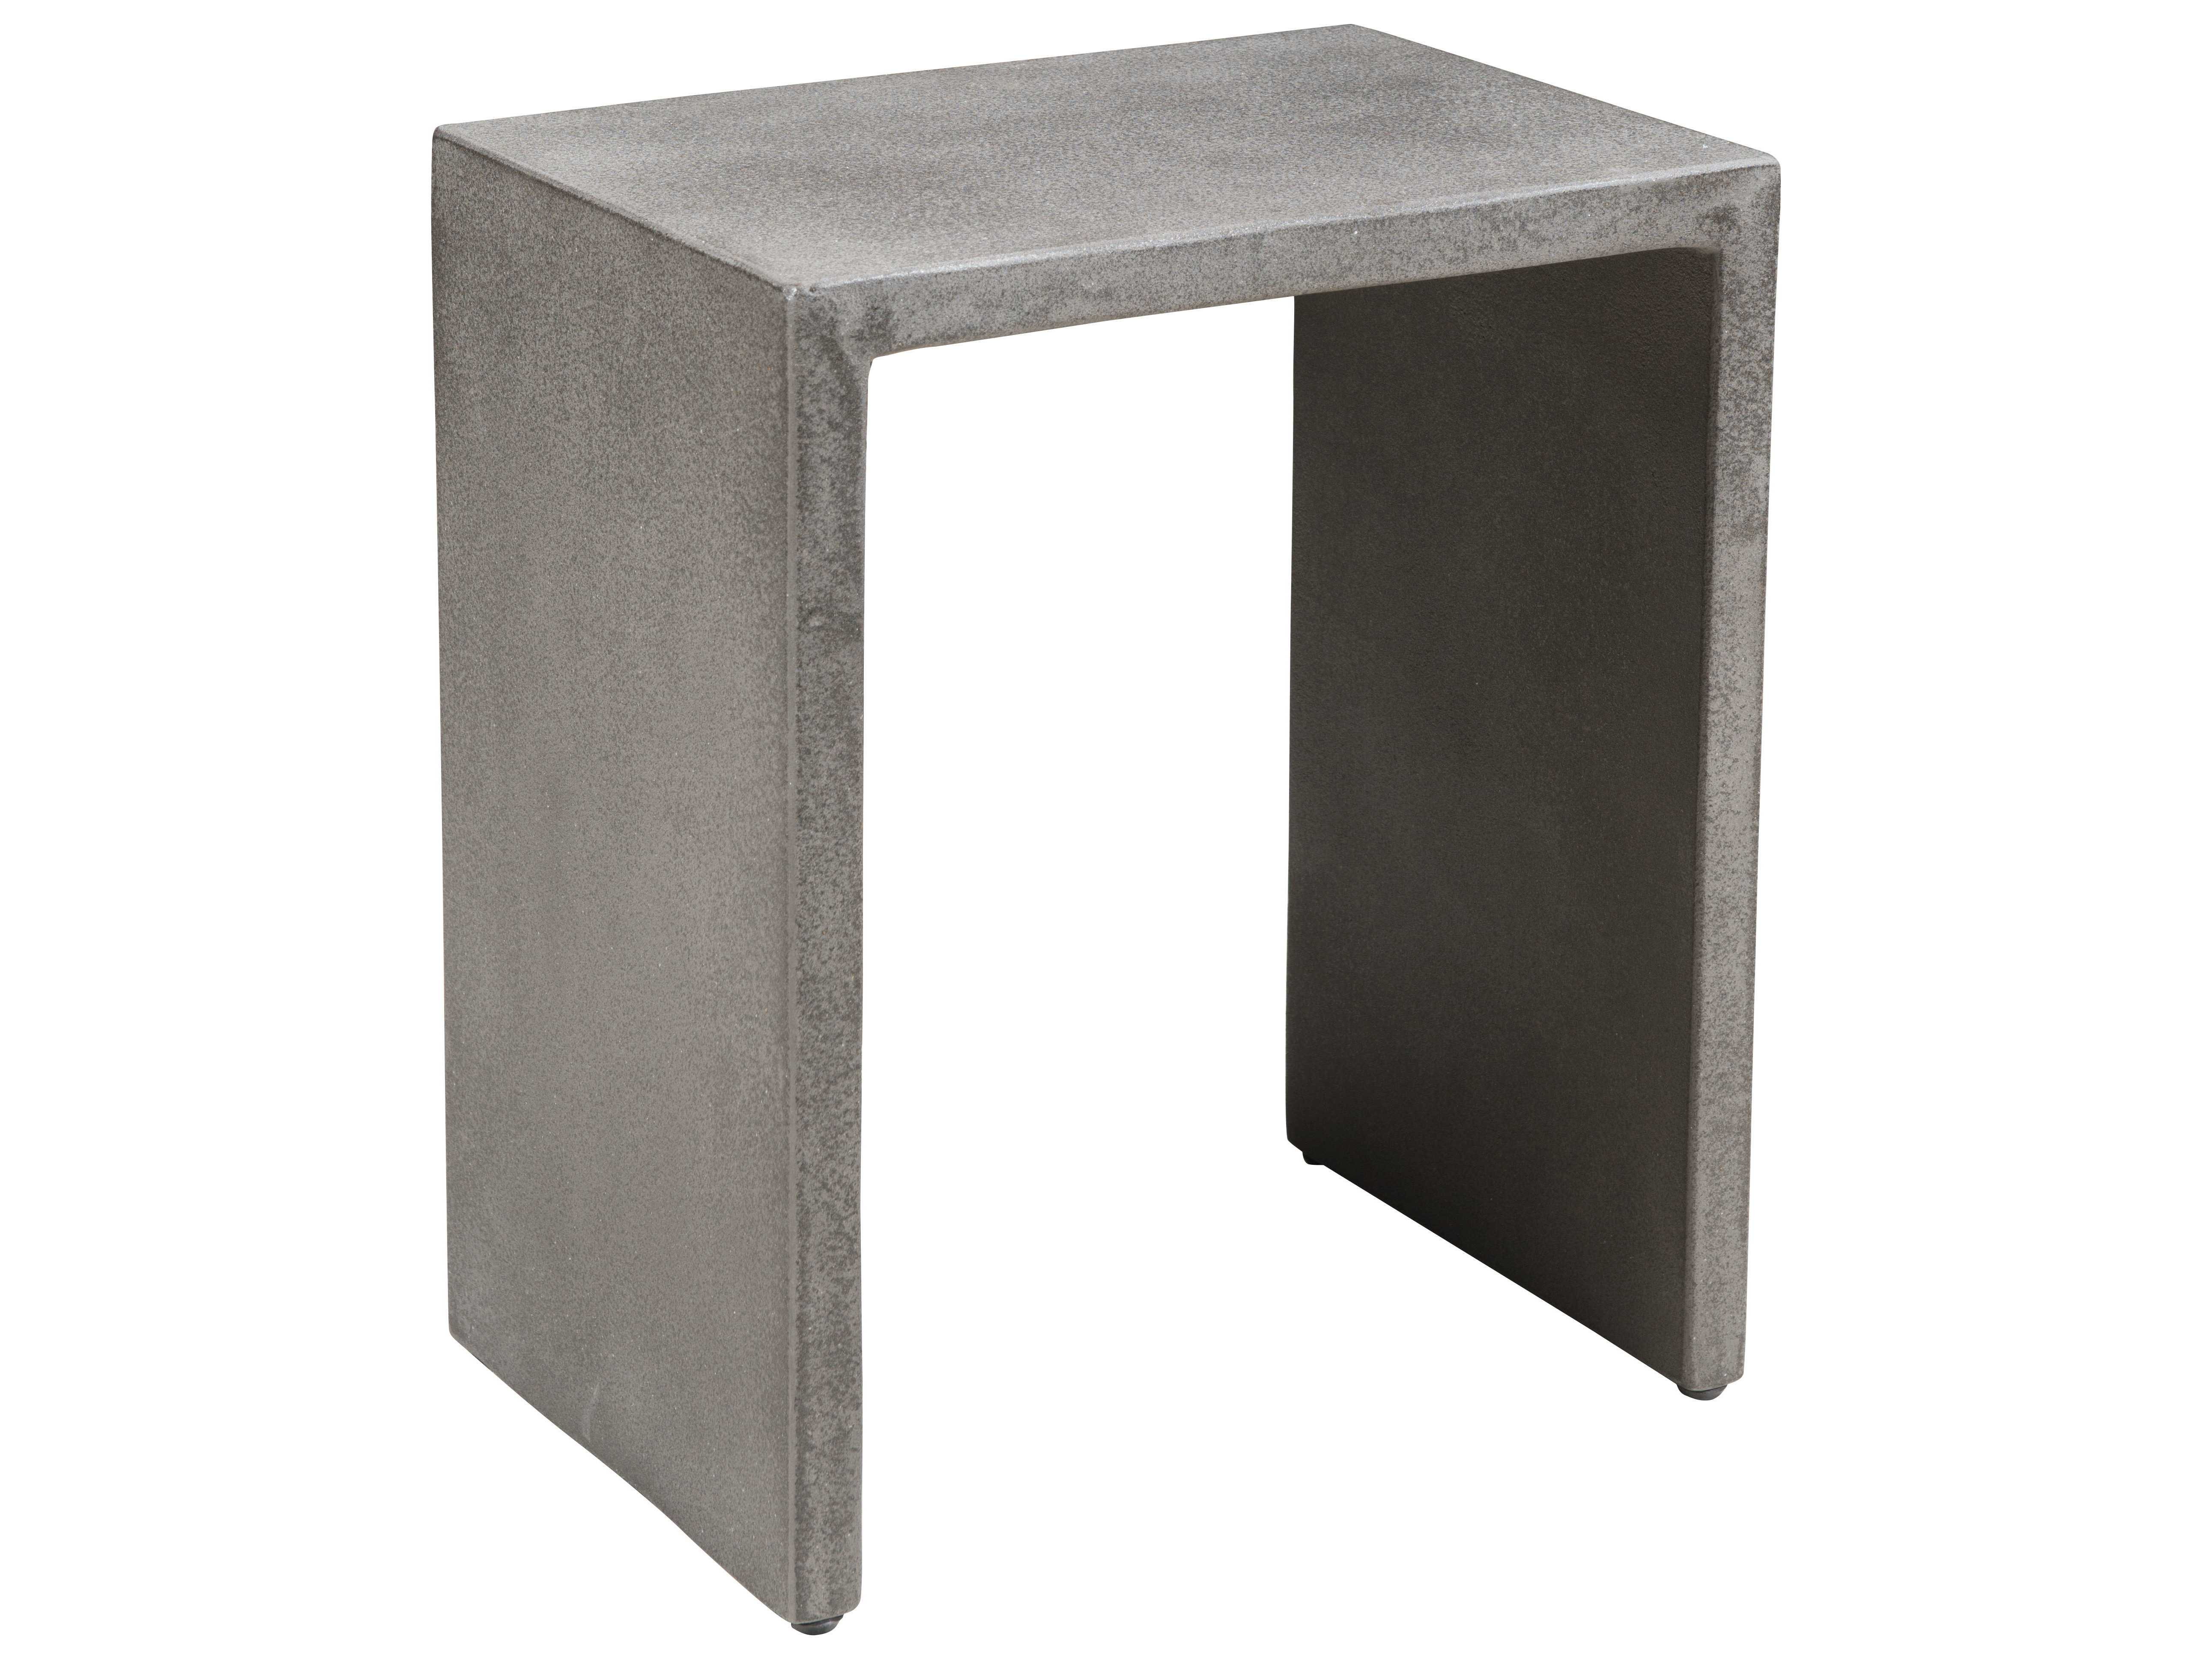 Genial ... Zuo Outdoor Mom Poly Cement 16.5 X 12.3 Rectangular Nesting Side Table  In Cement ...